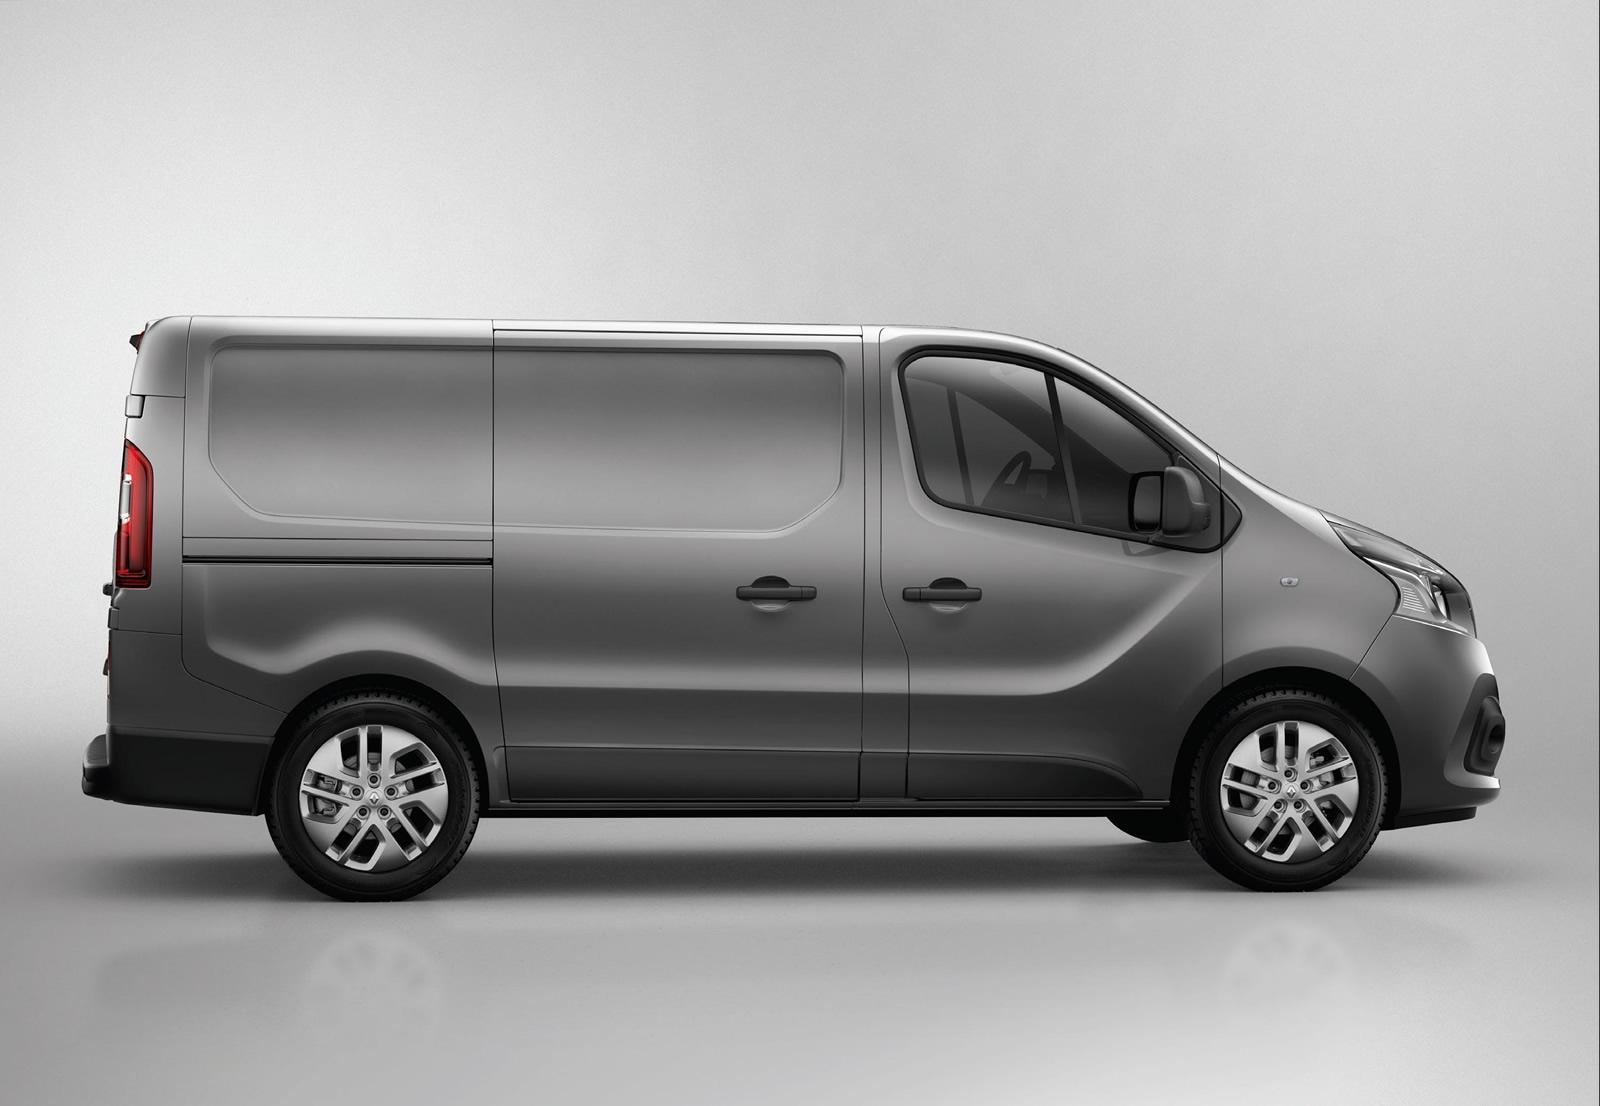 2014 renault trafic fuel consumption 5 1 l 100 km. Black Bedroom Furniture Sets. Home Design Ideas